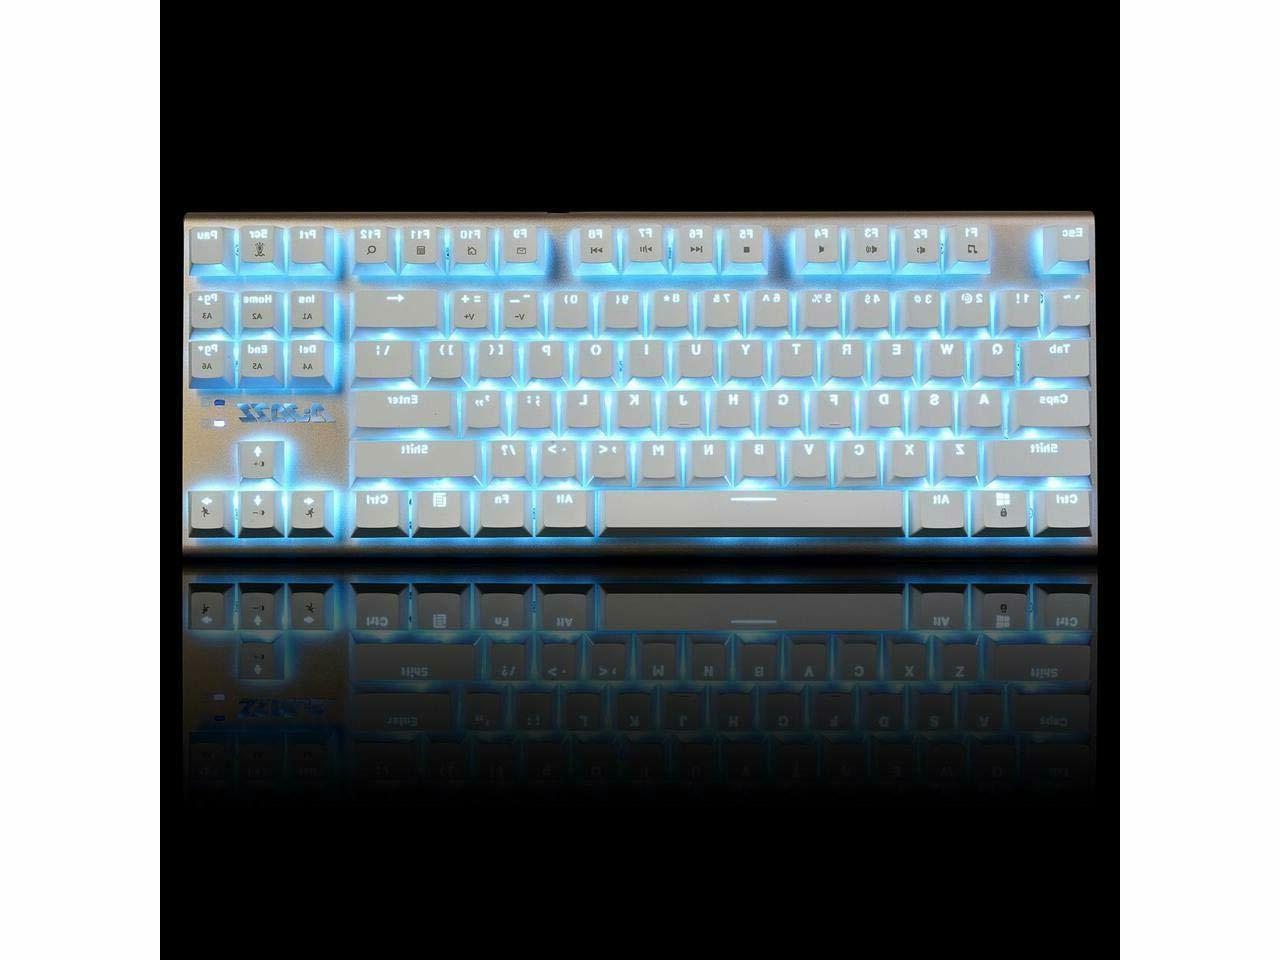 Ajazz AK40 Black Backlit Gaming Keyboard with 87 Keys/USB Wired